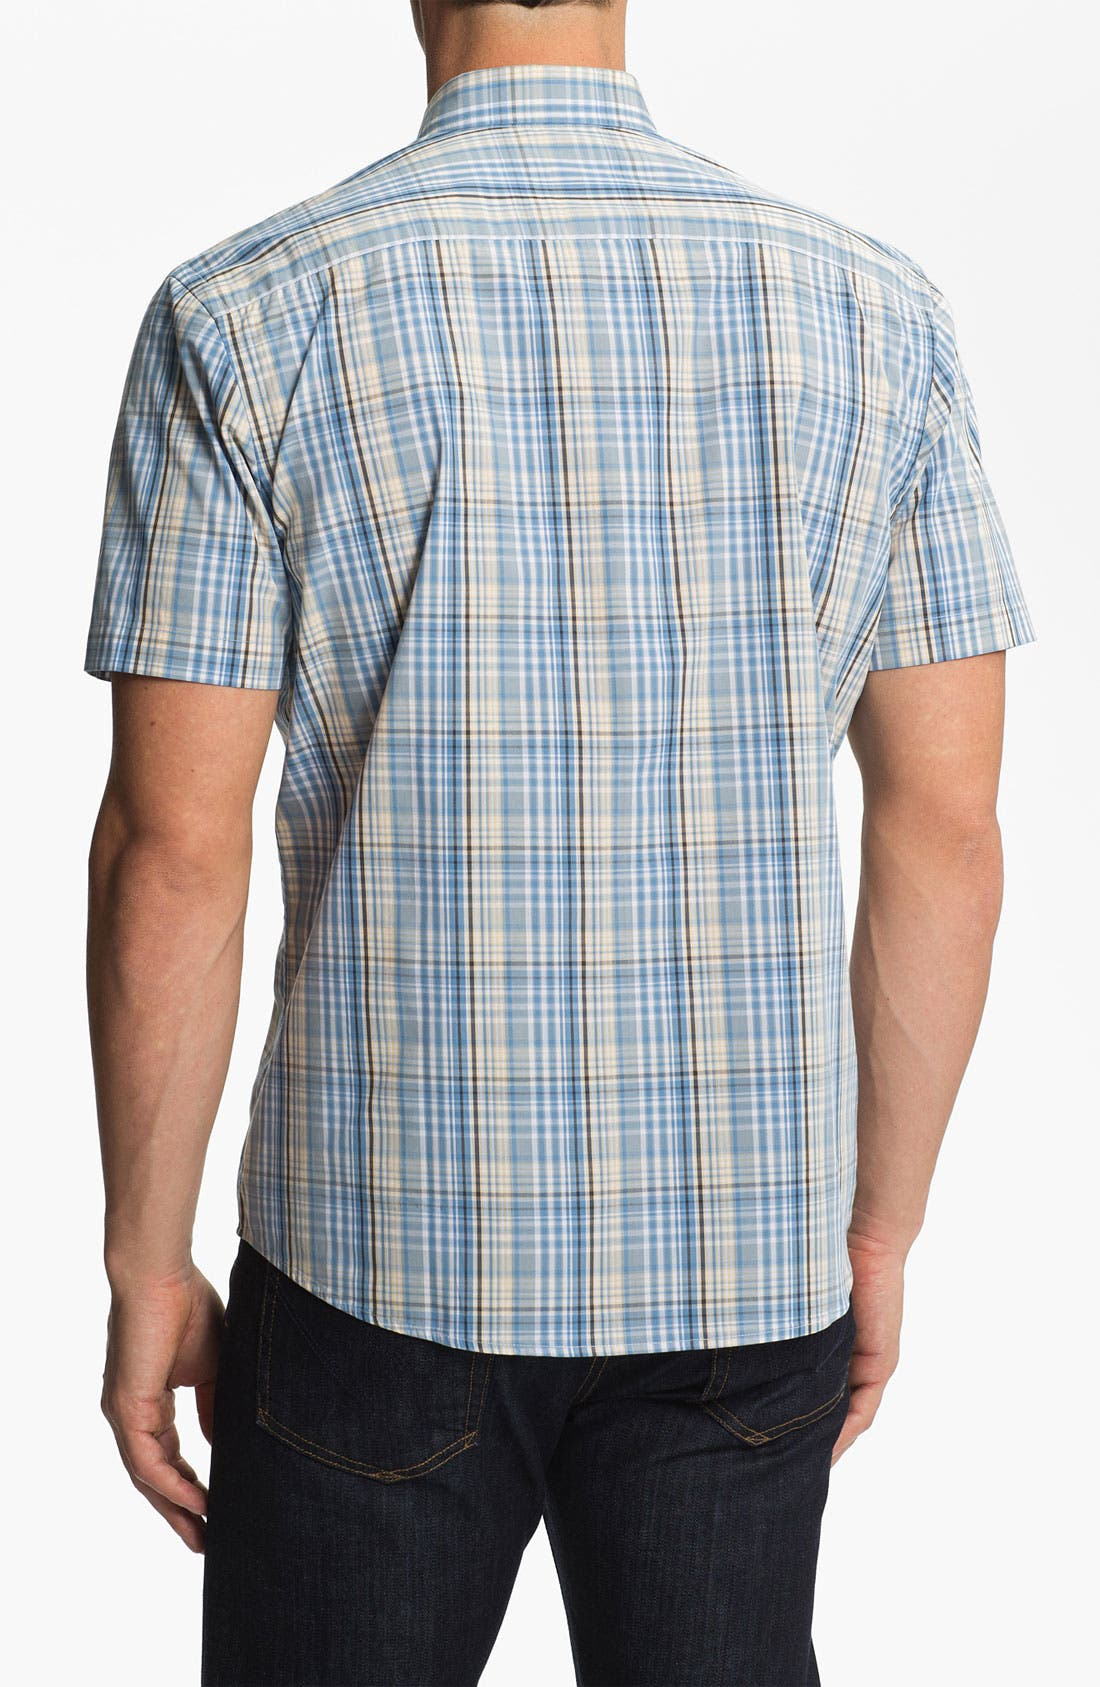 Alternate Image 2  - Cutter & Buck 'Leary' Plaid Sport Shirt